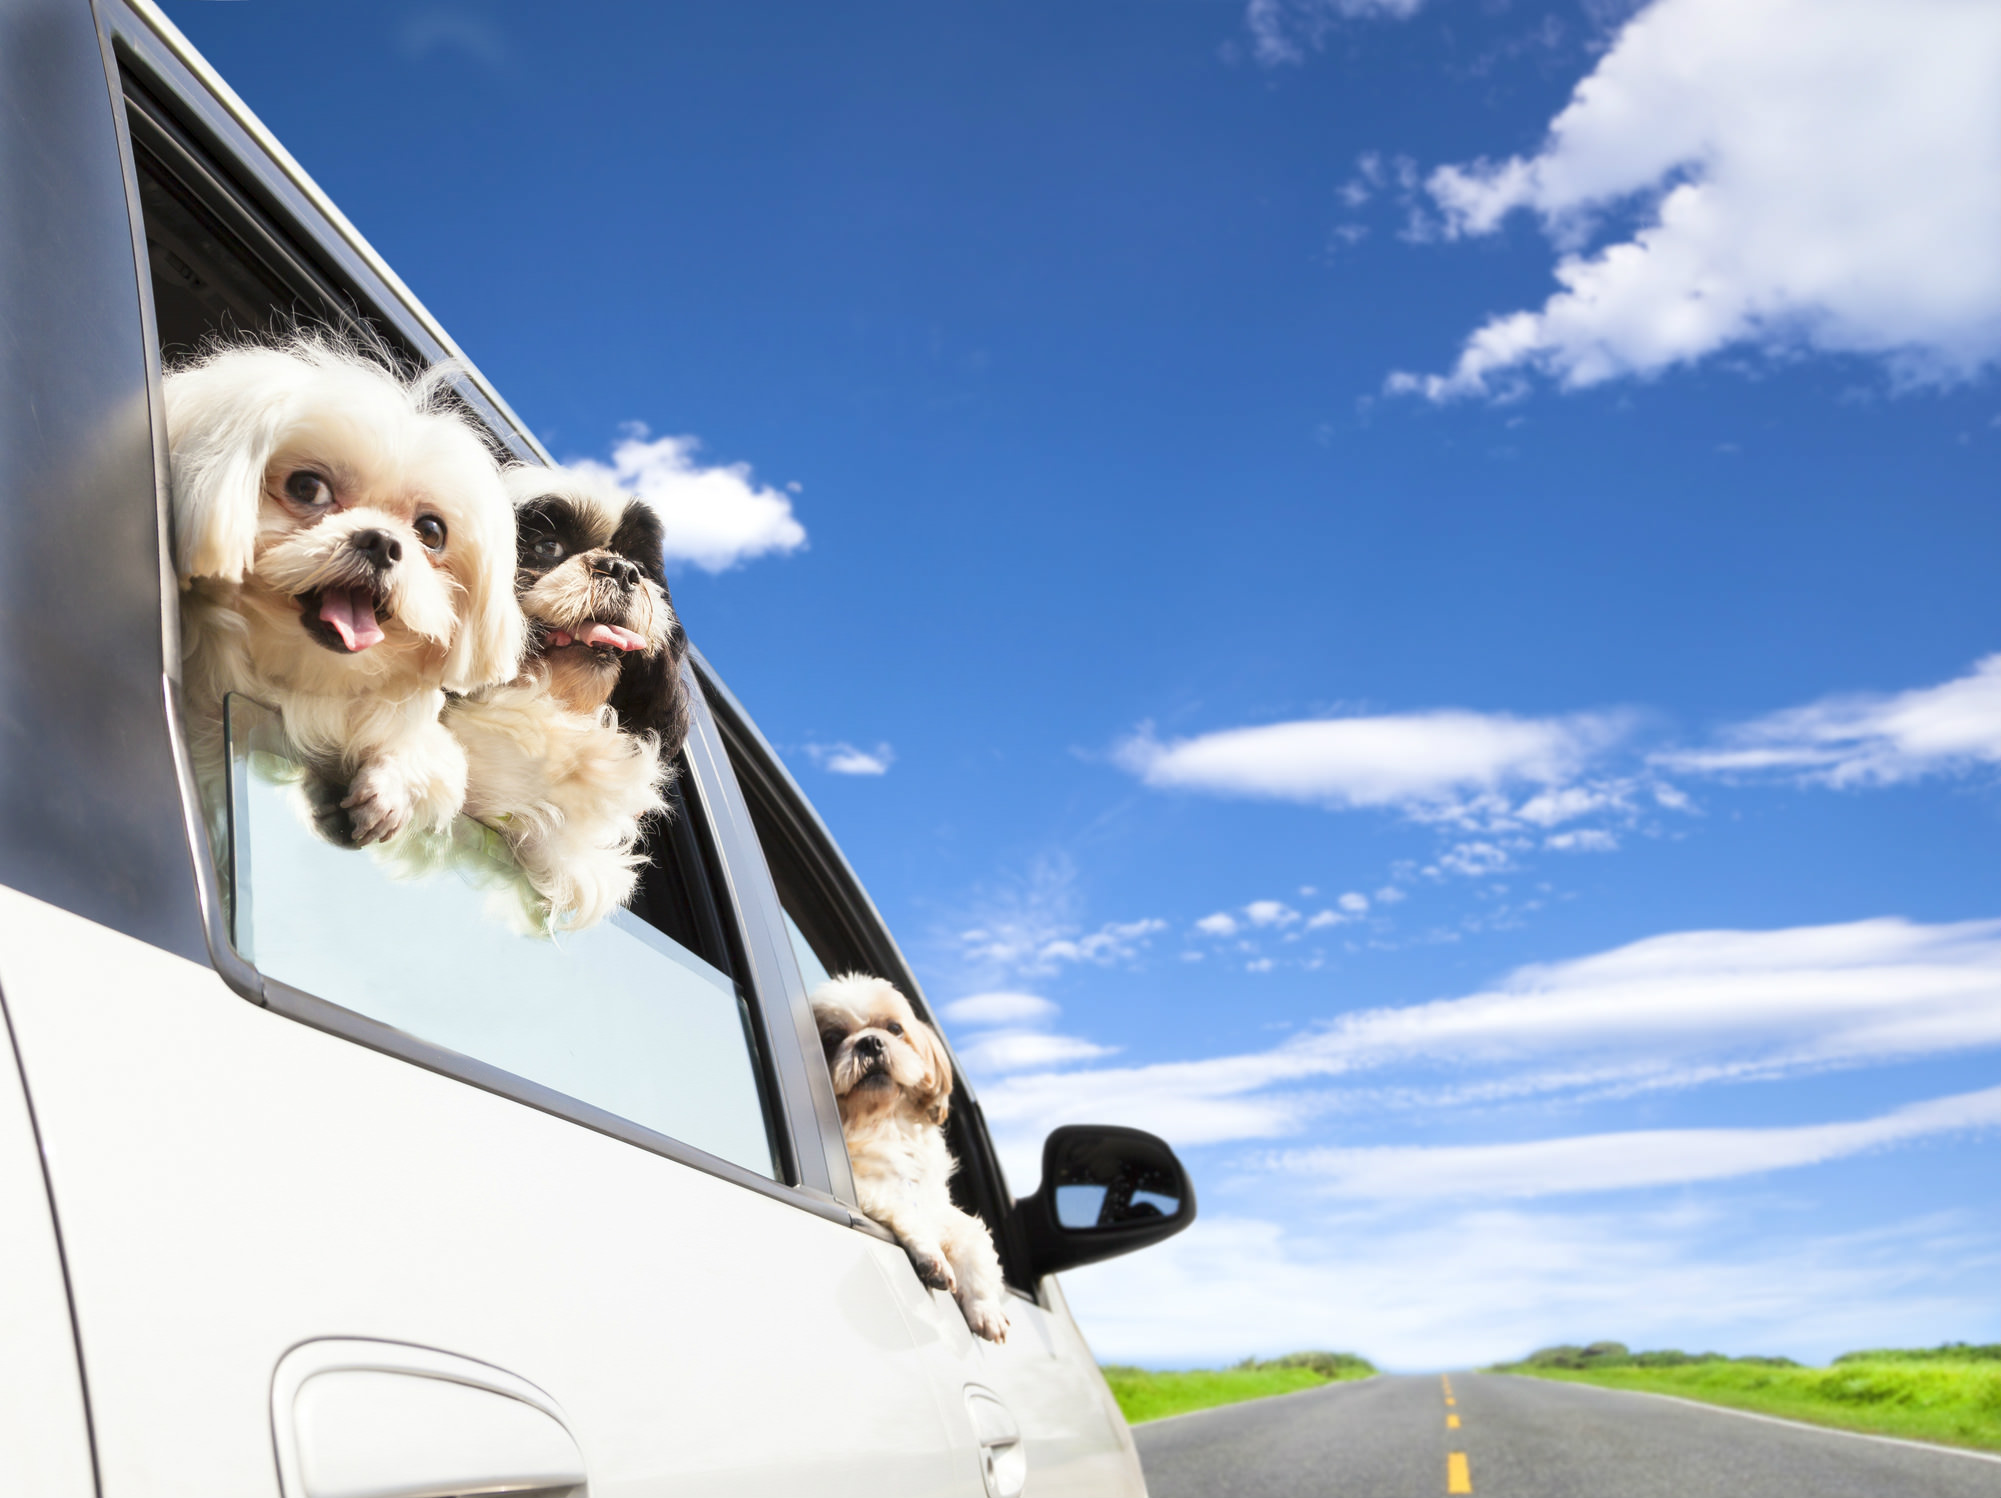 blog/224/Dont let dogs hang their head out of the window